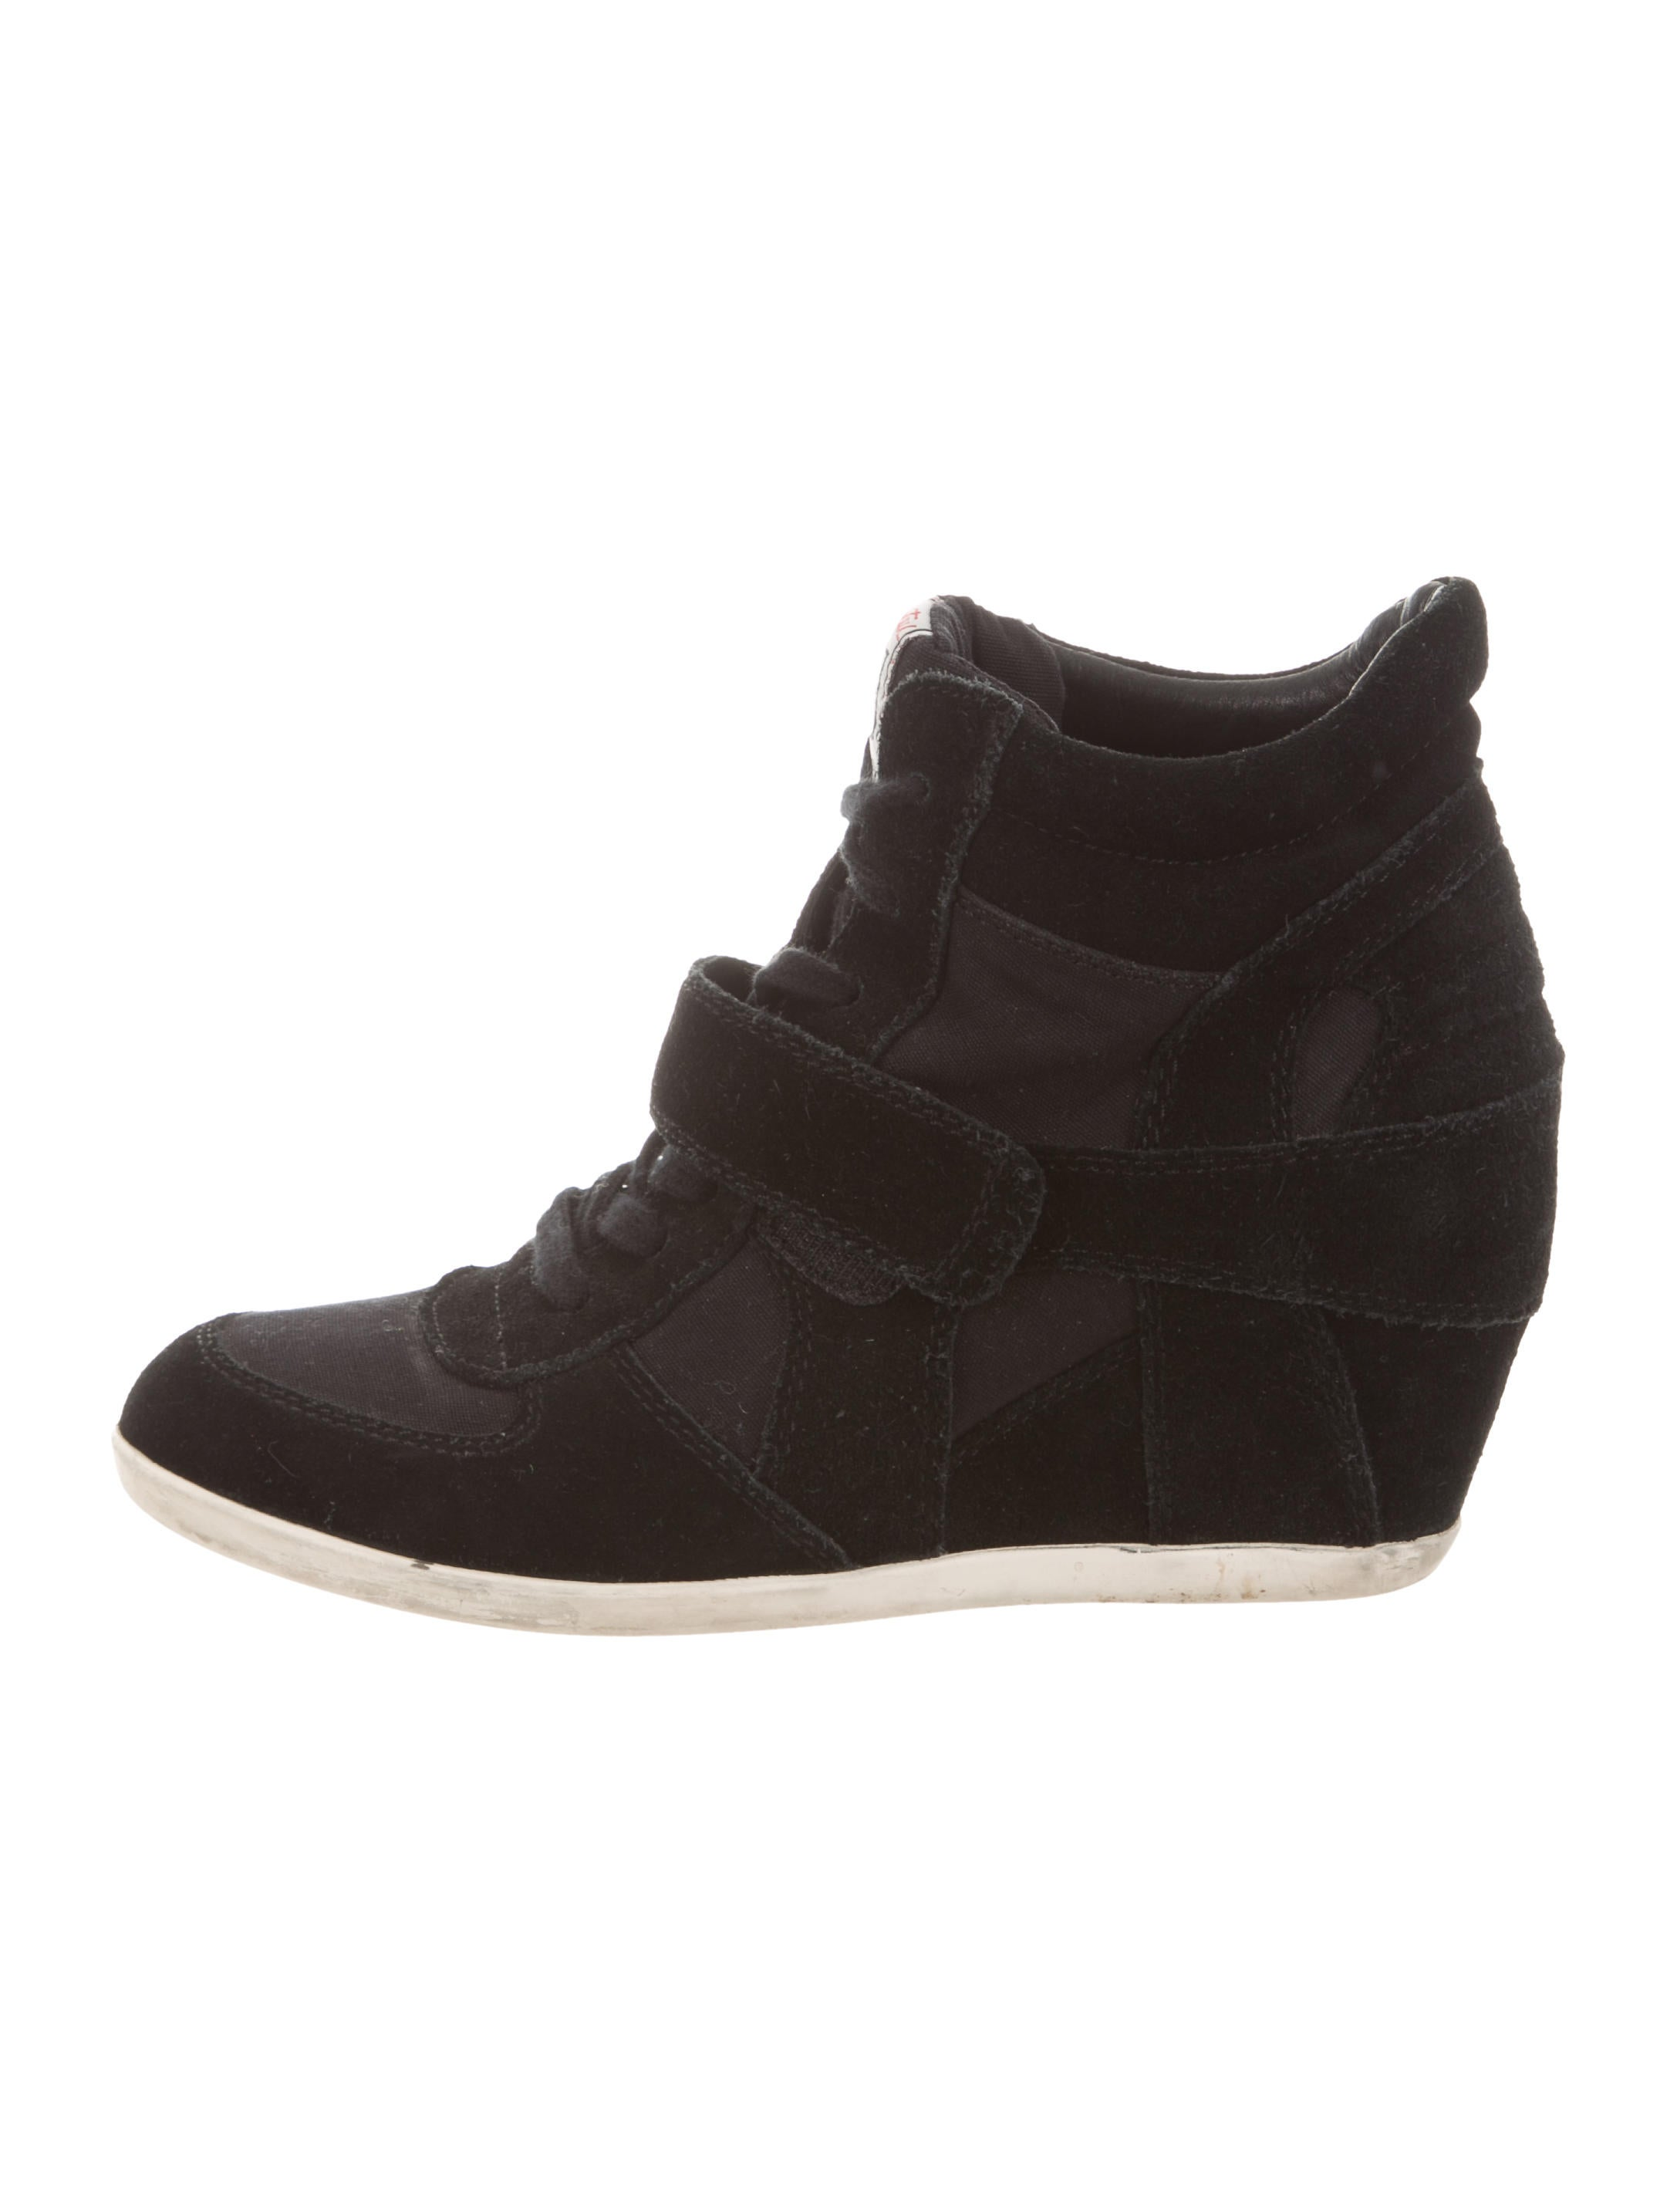 sale best wholesale cheap sale really Ash Fanny Wedge Sneakers discount official clearance fast delivery 80H0NJ